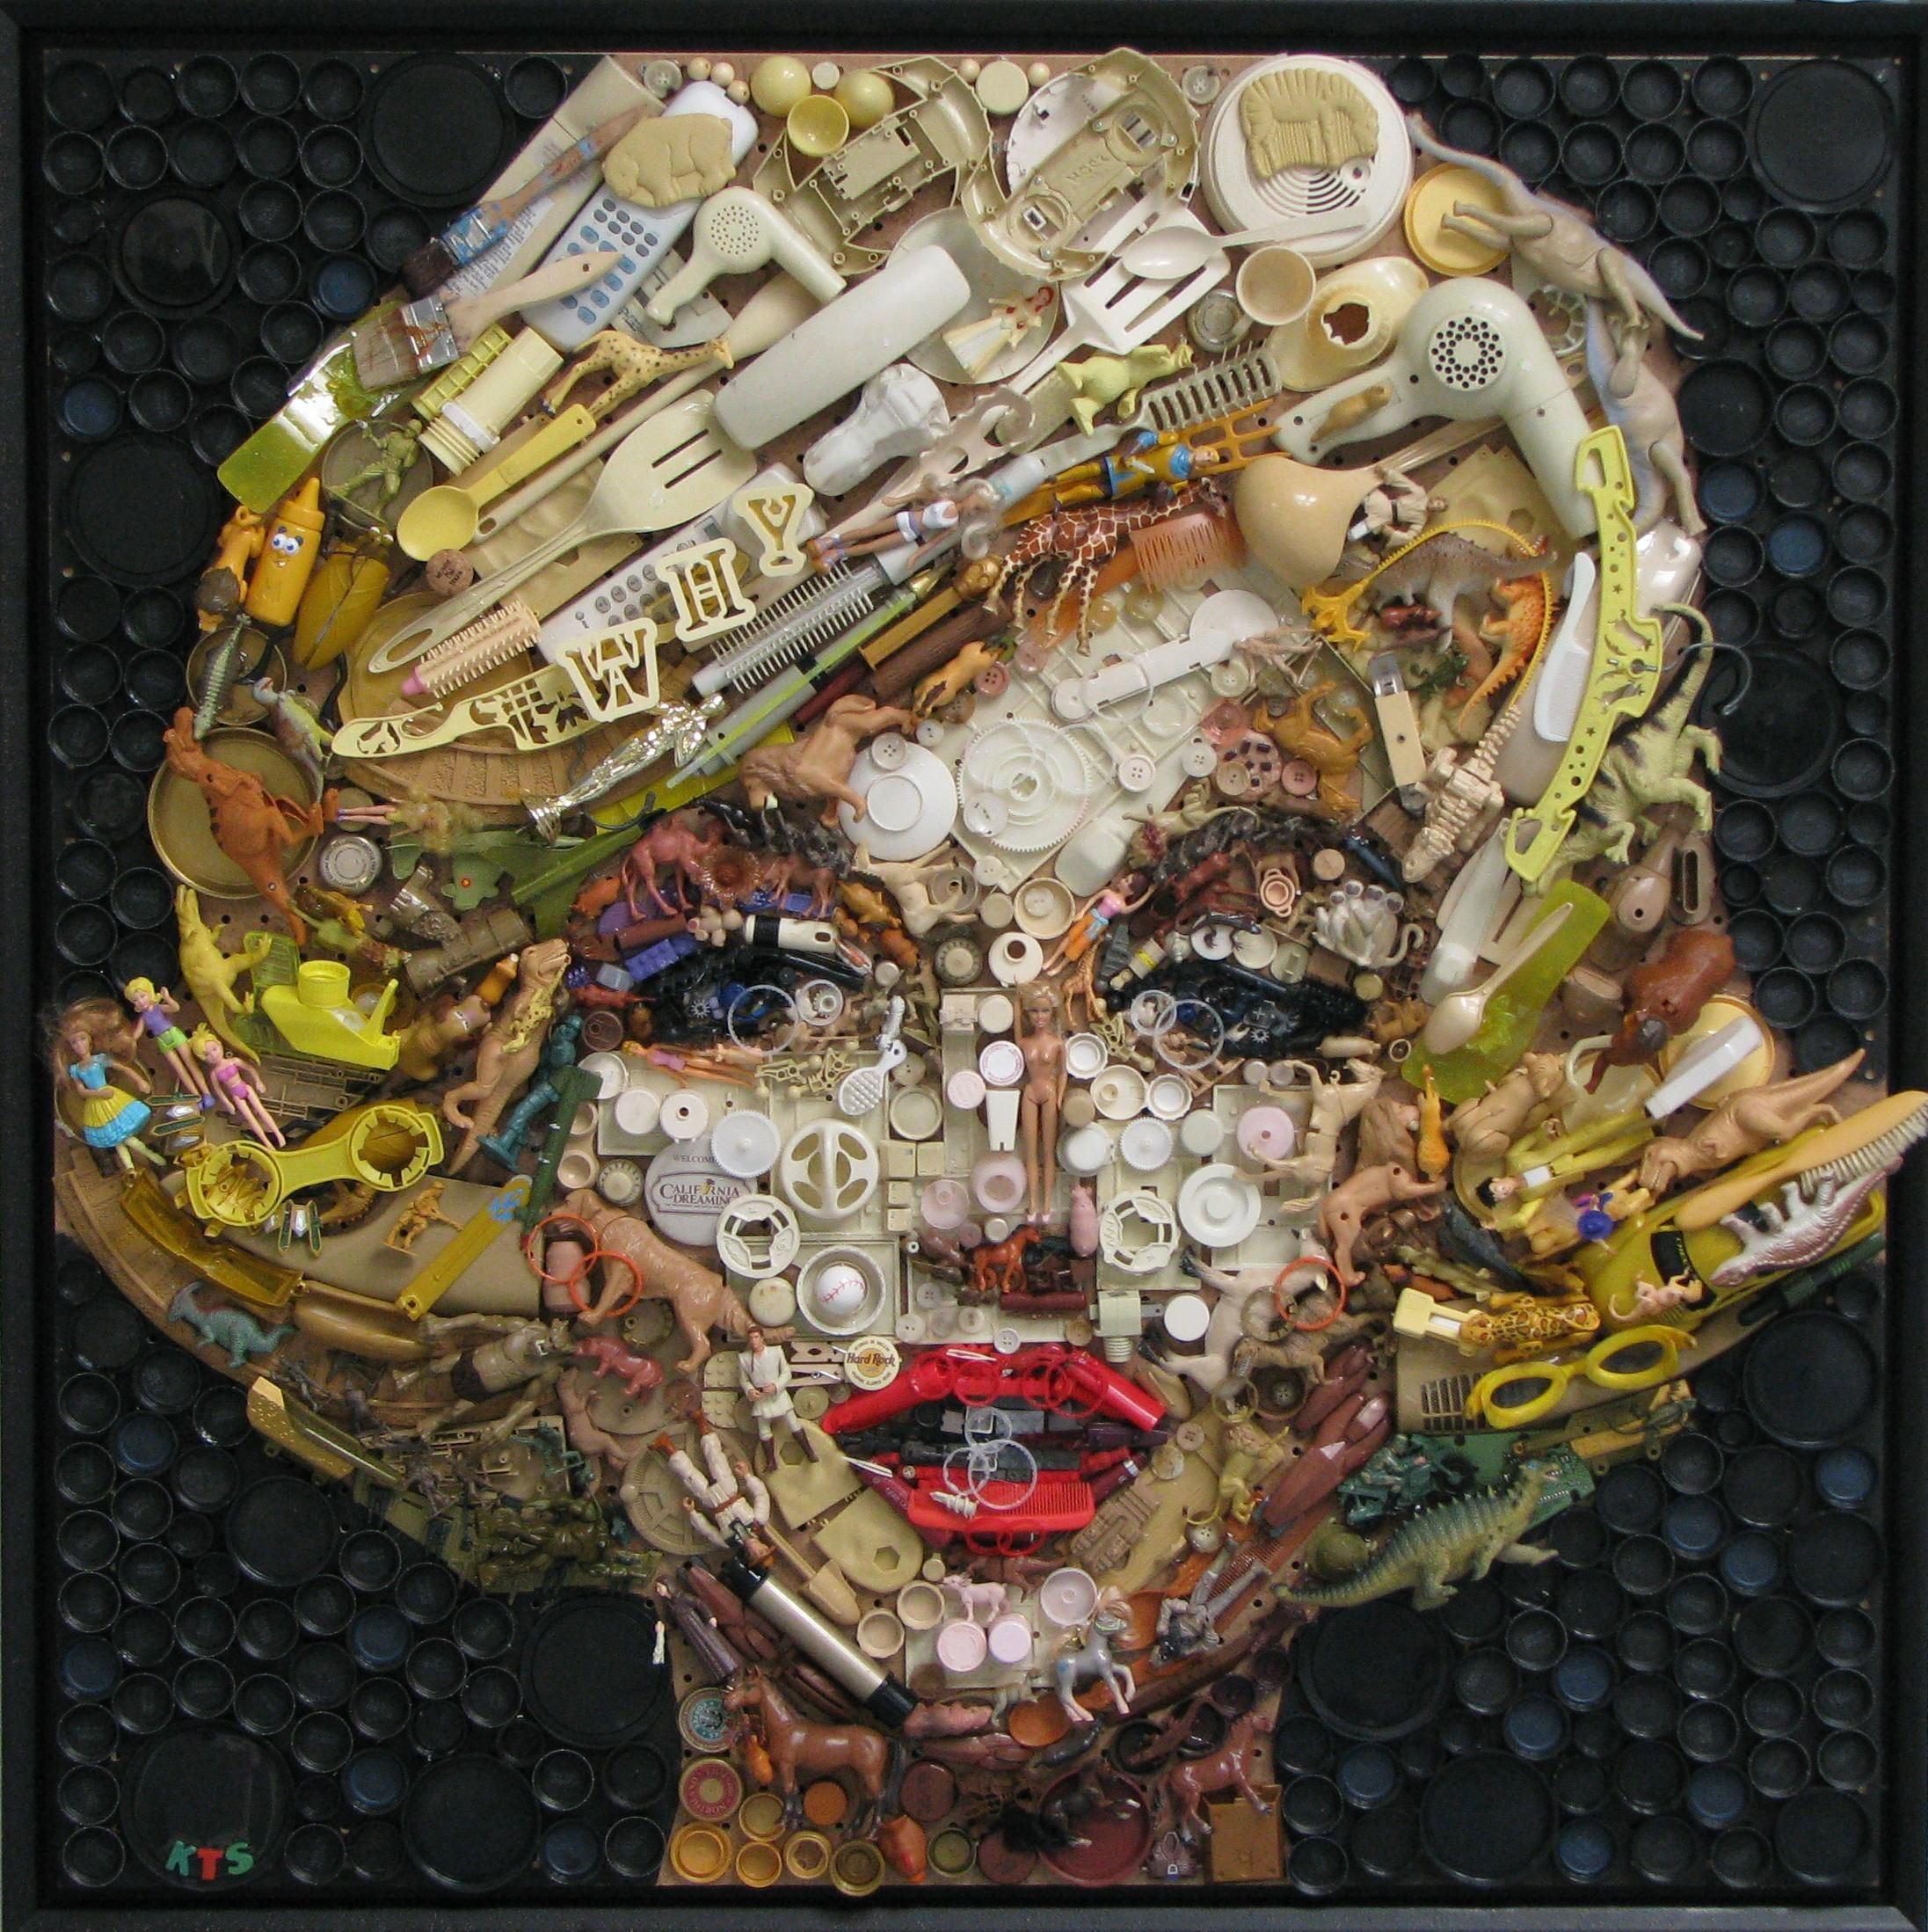 pin by angela on assemblages art artist